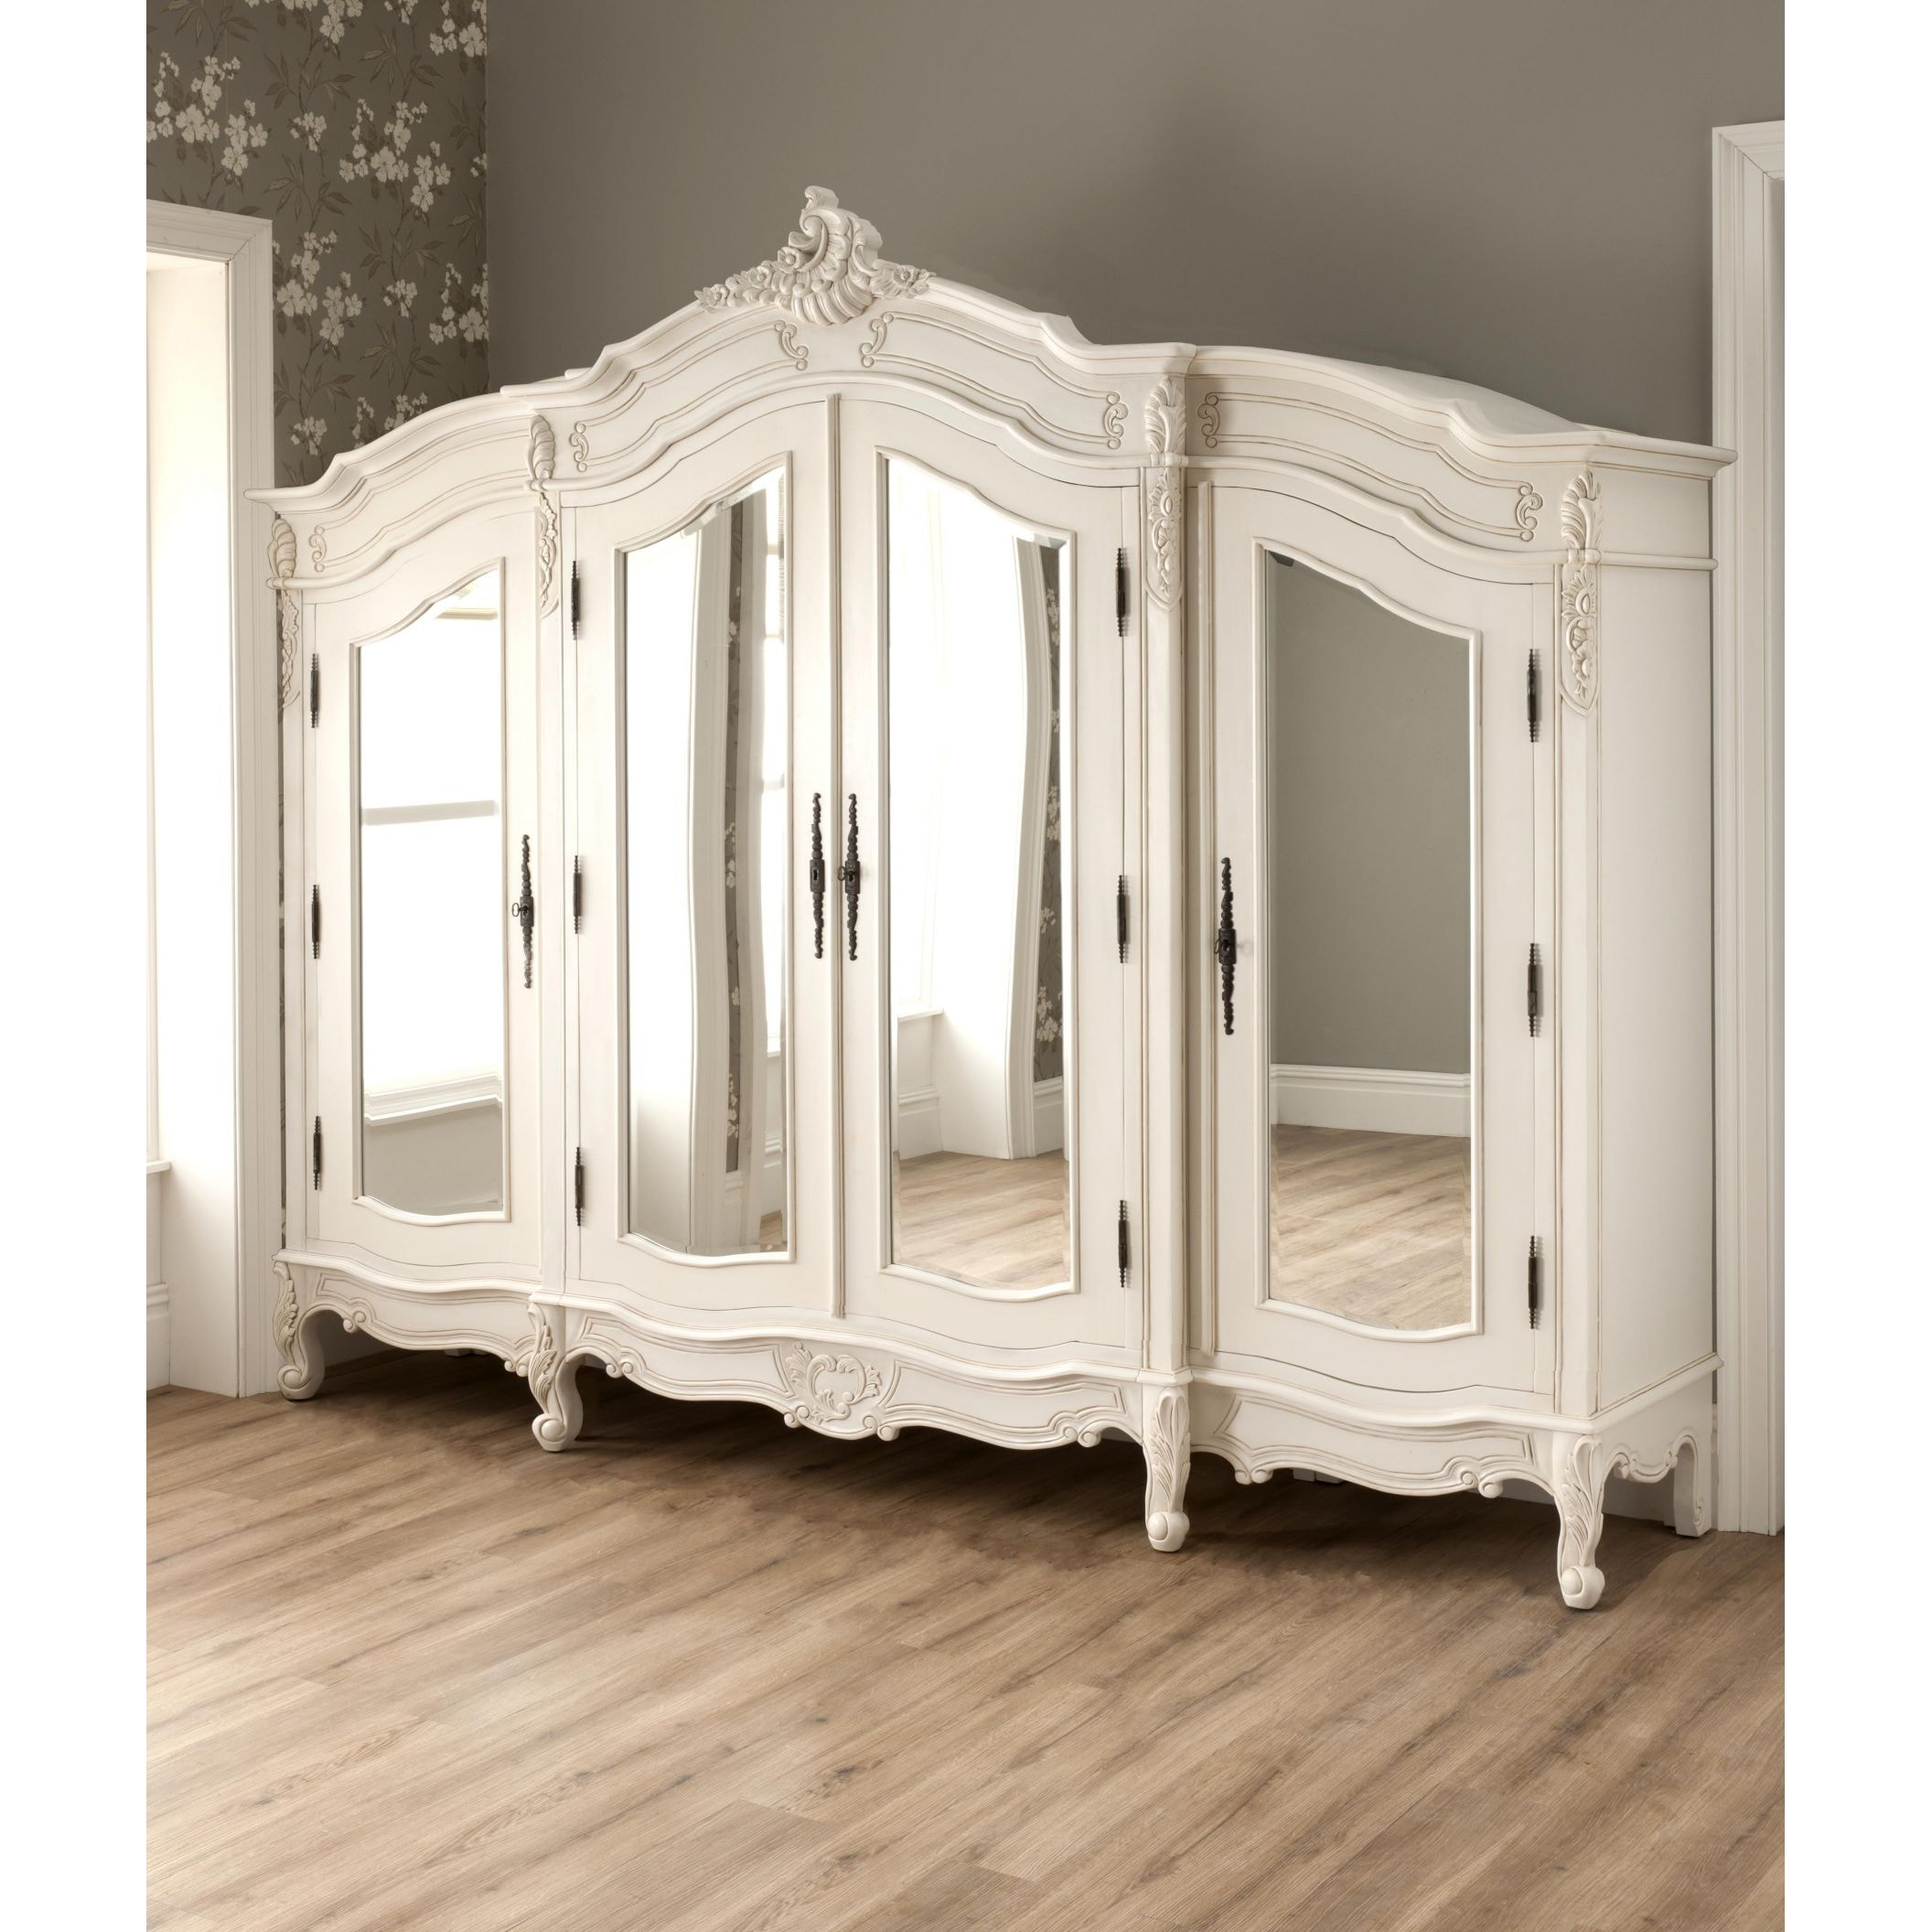 Large Antique French Wardrobe compliments our fantastic